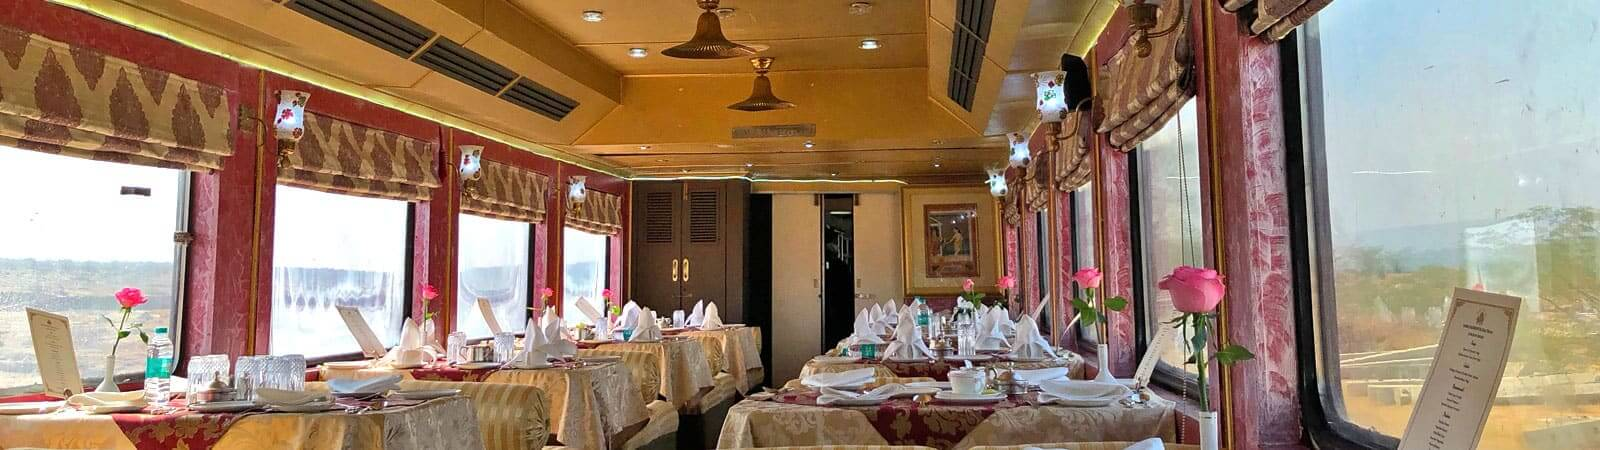 Palace on Wheels Maharajah Restaurant